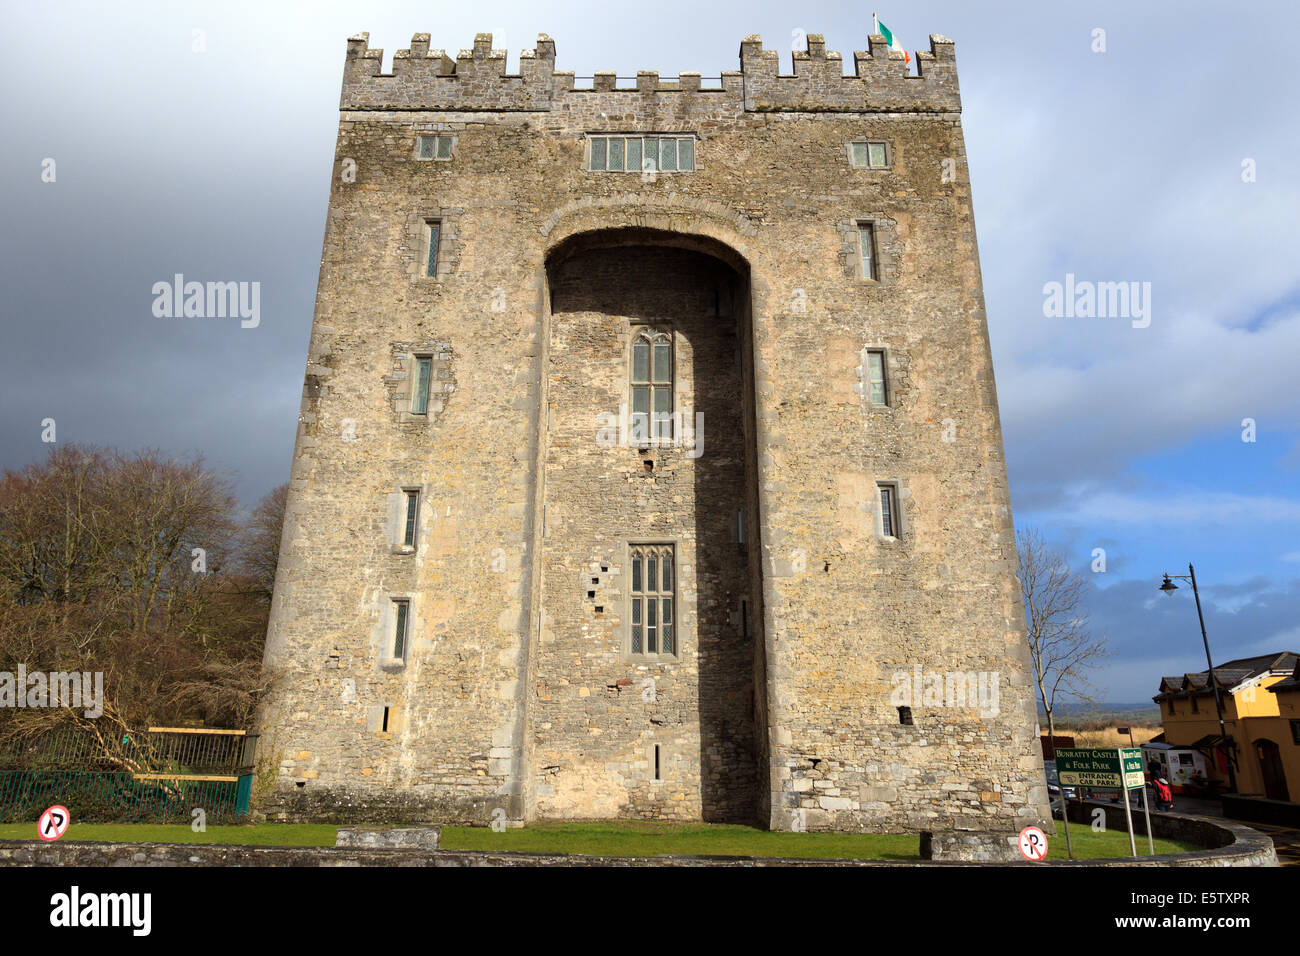 The bunratty castle in ireland the castle is a large for Castle house plans with towers